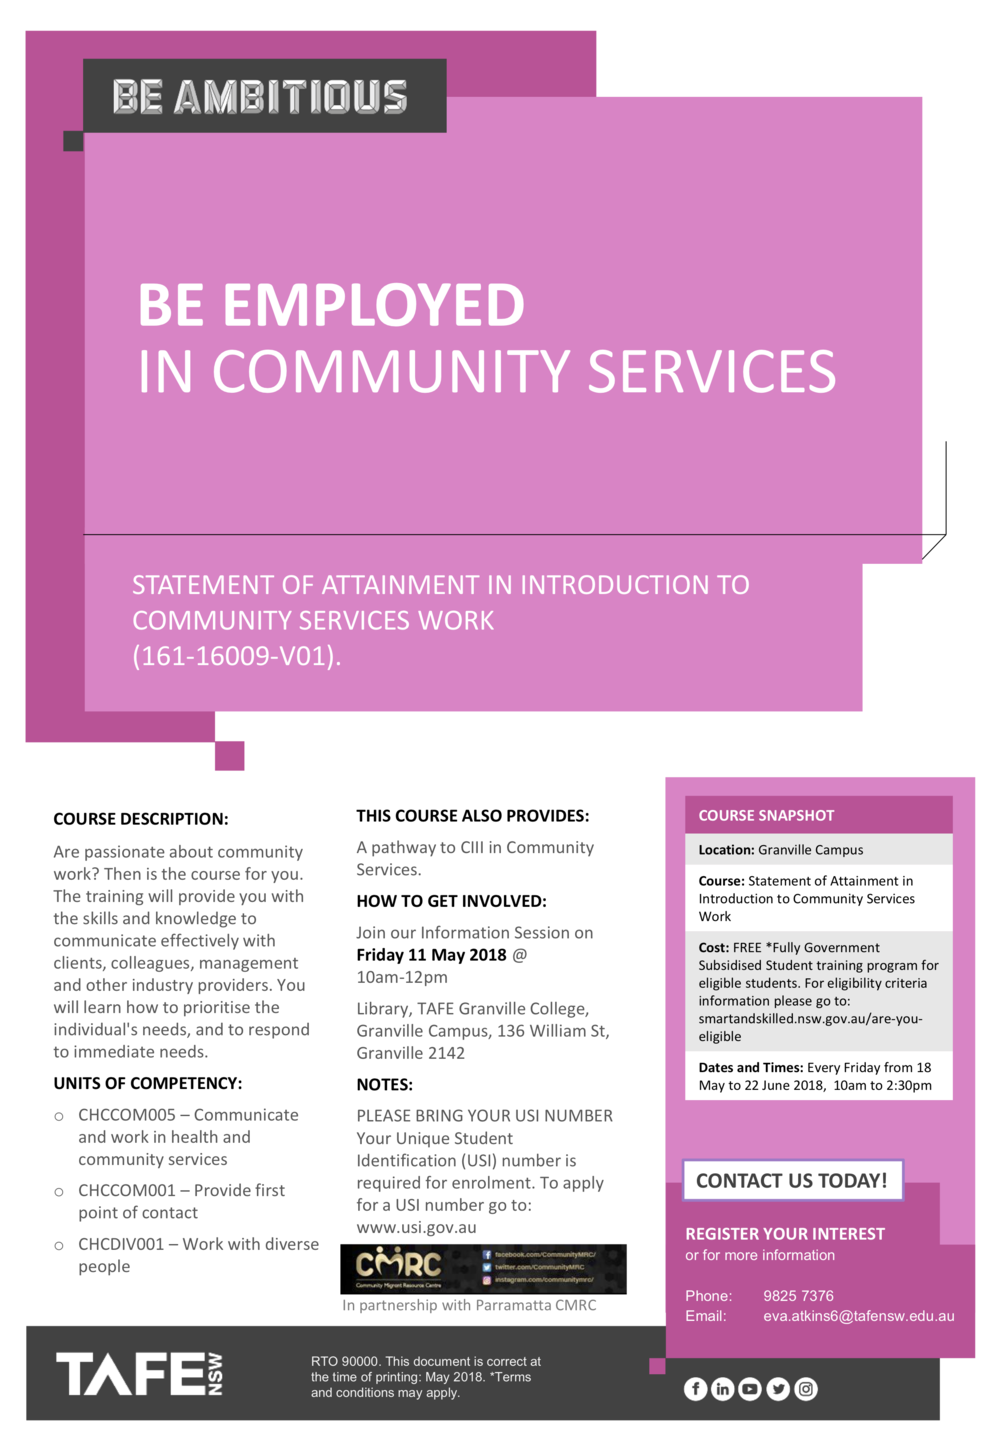 Flyer SoA in Introduction to Community Services Work.png